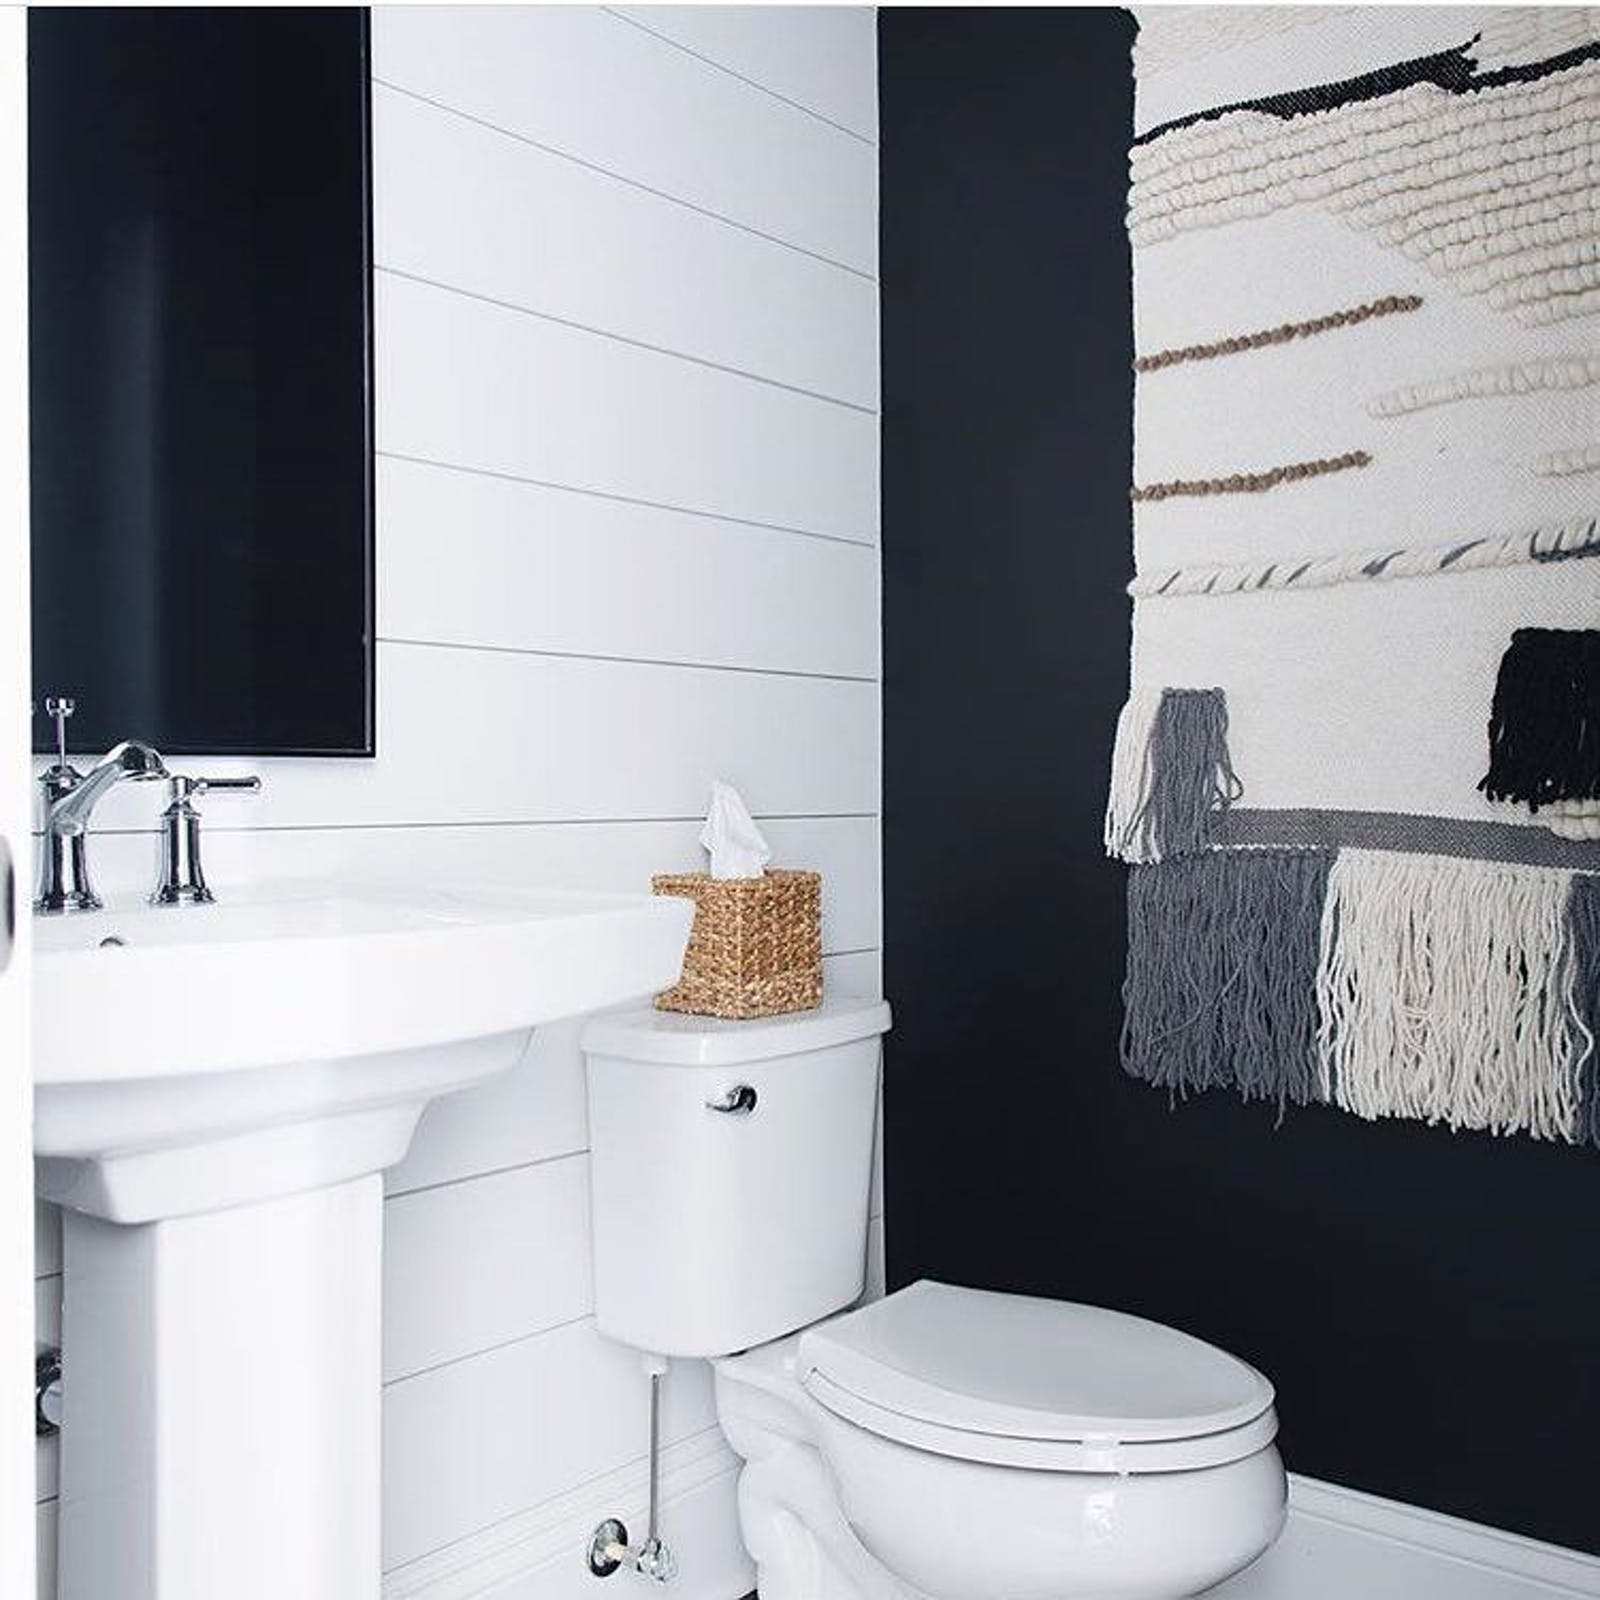 Black and white bathroom with textures on the wall